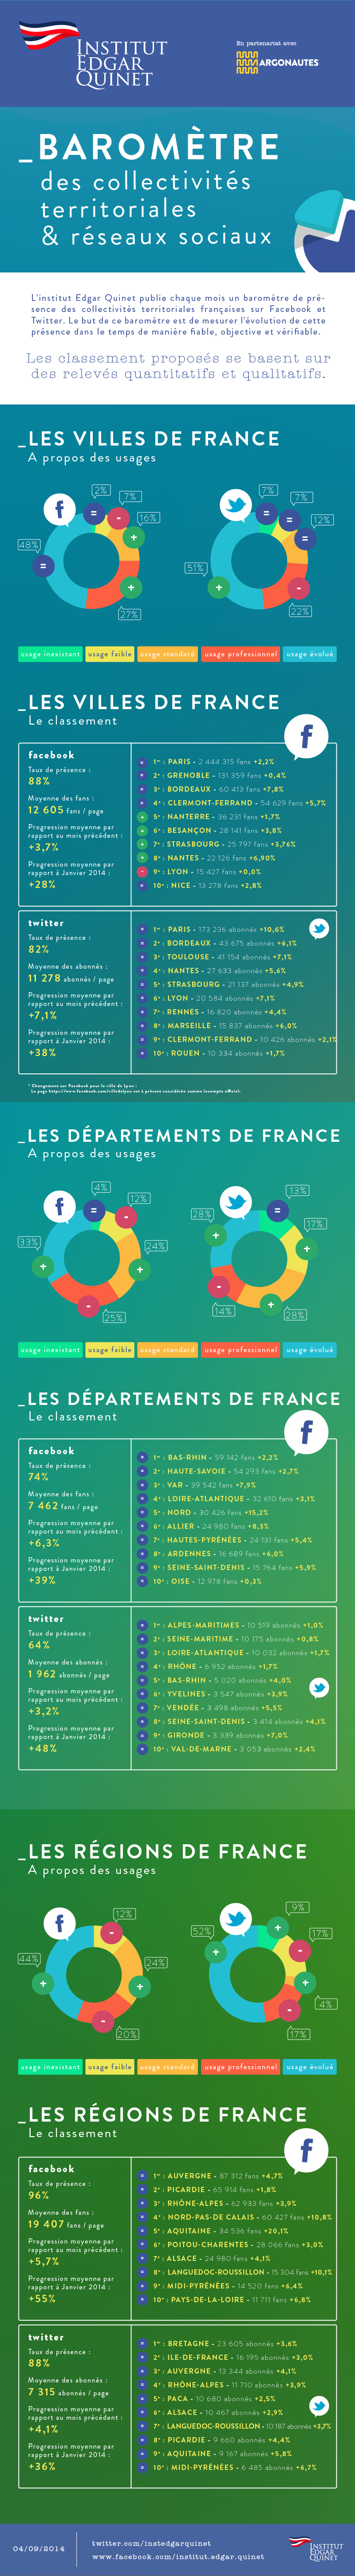 http://www.edgar-quinet.fr/wp-content/uploads/2014/09/infographie_aout20141.png